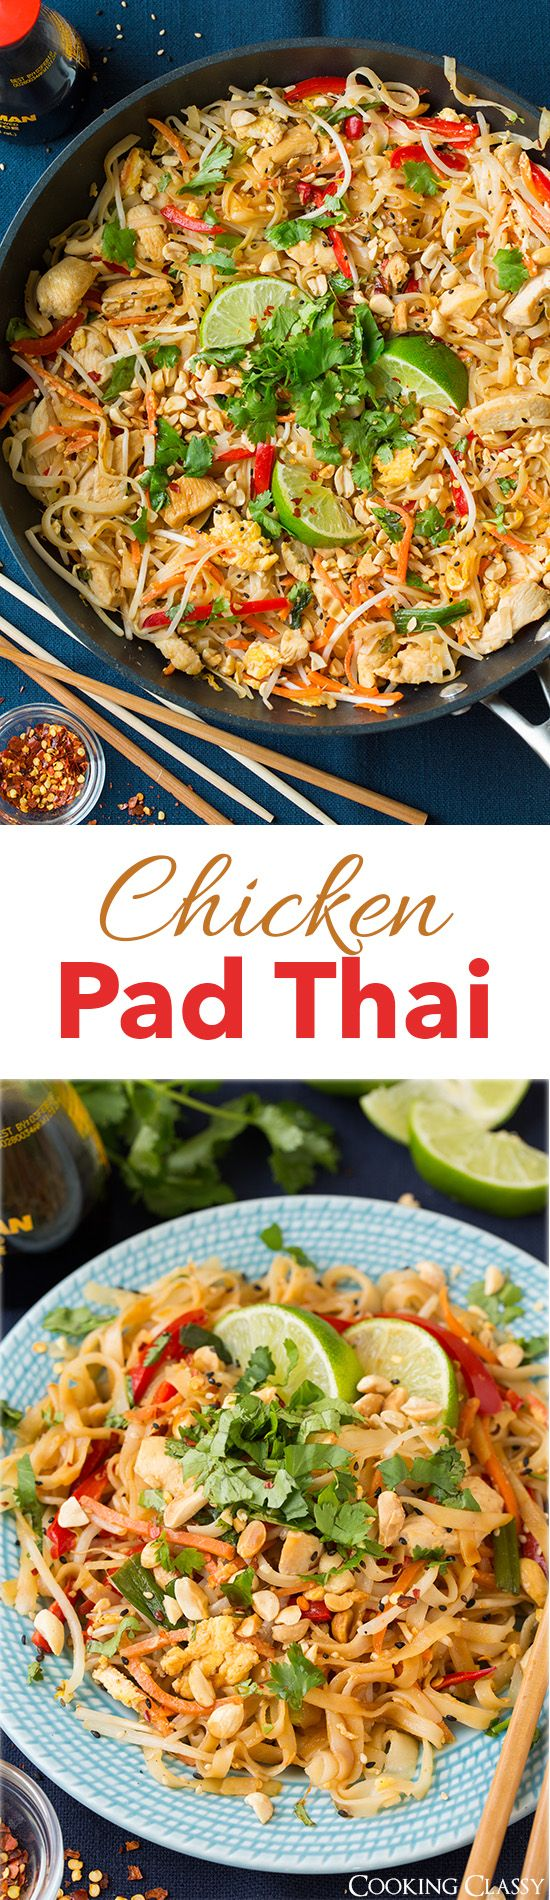 Chicken Pad Thai -